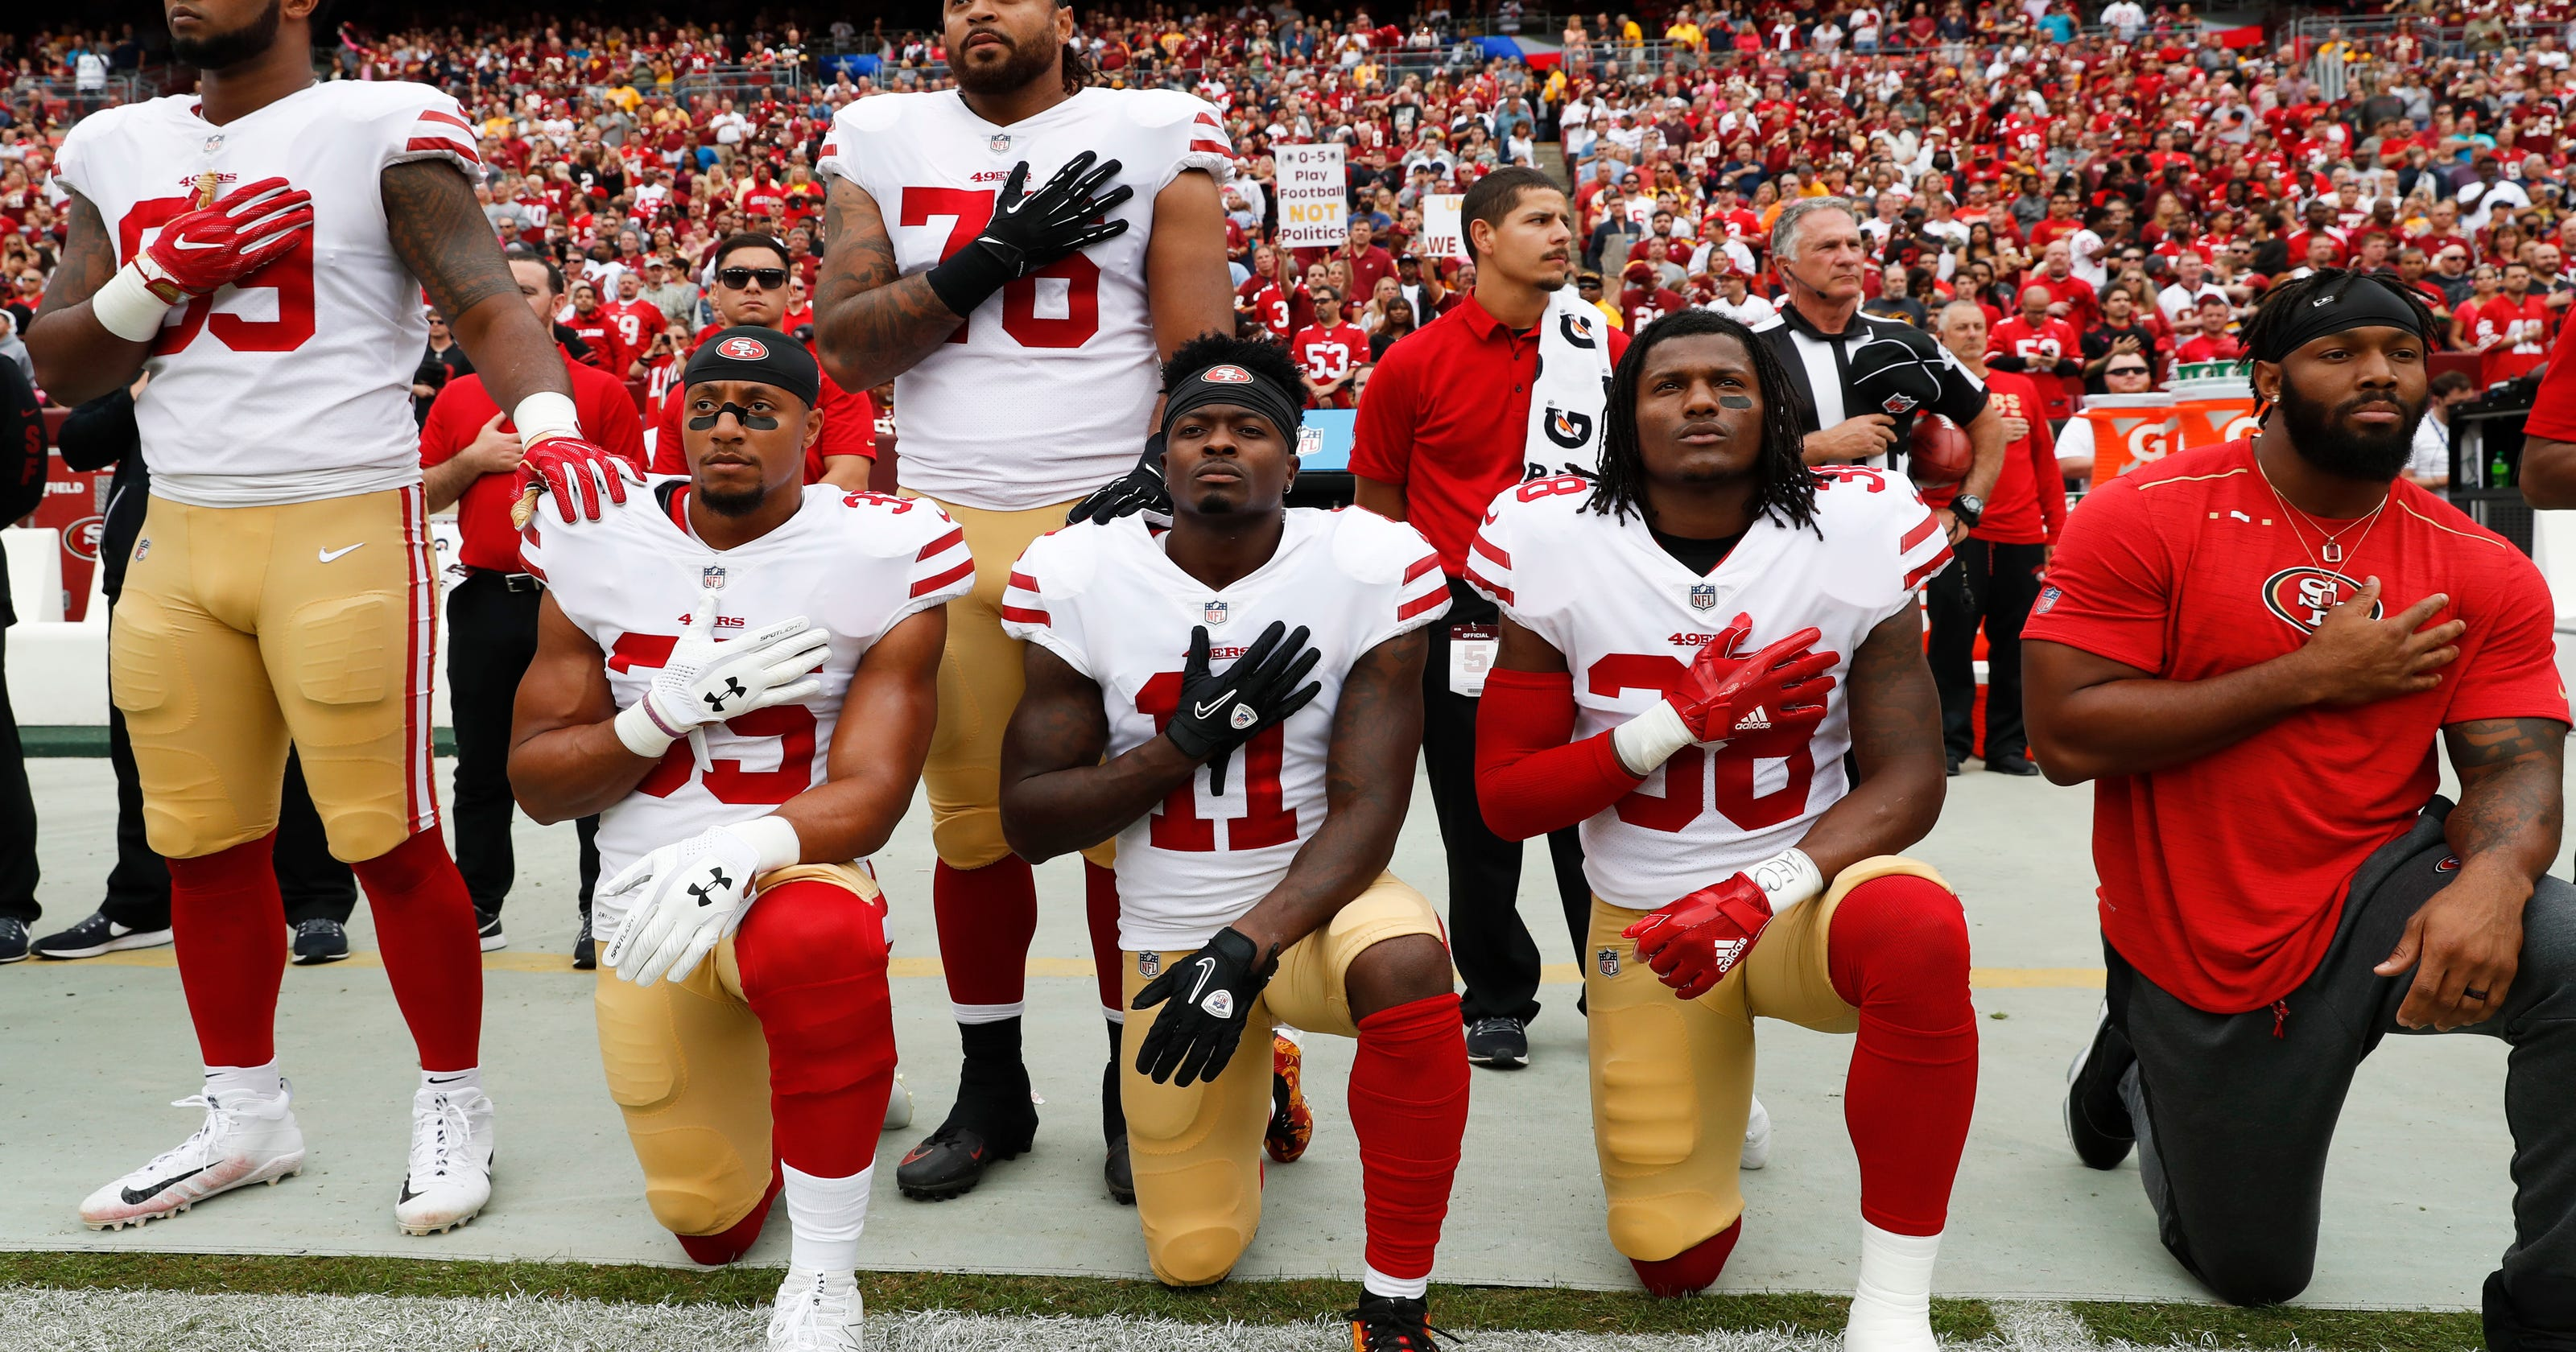 49ers players continue protests during national anthem |Football Players Kneeling